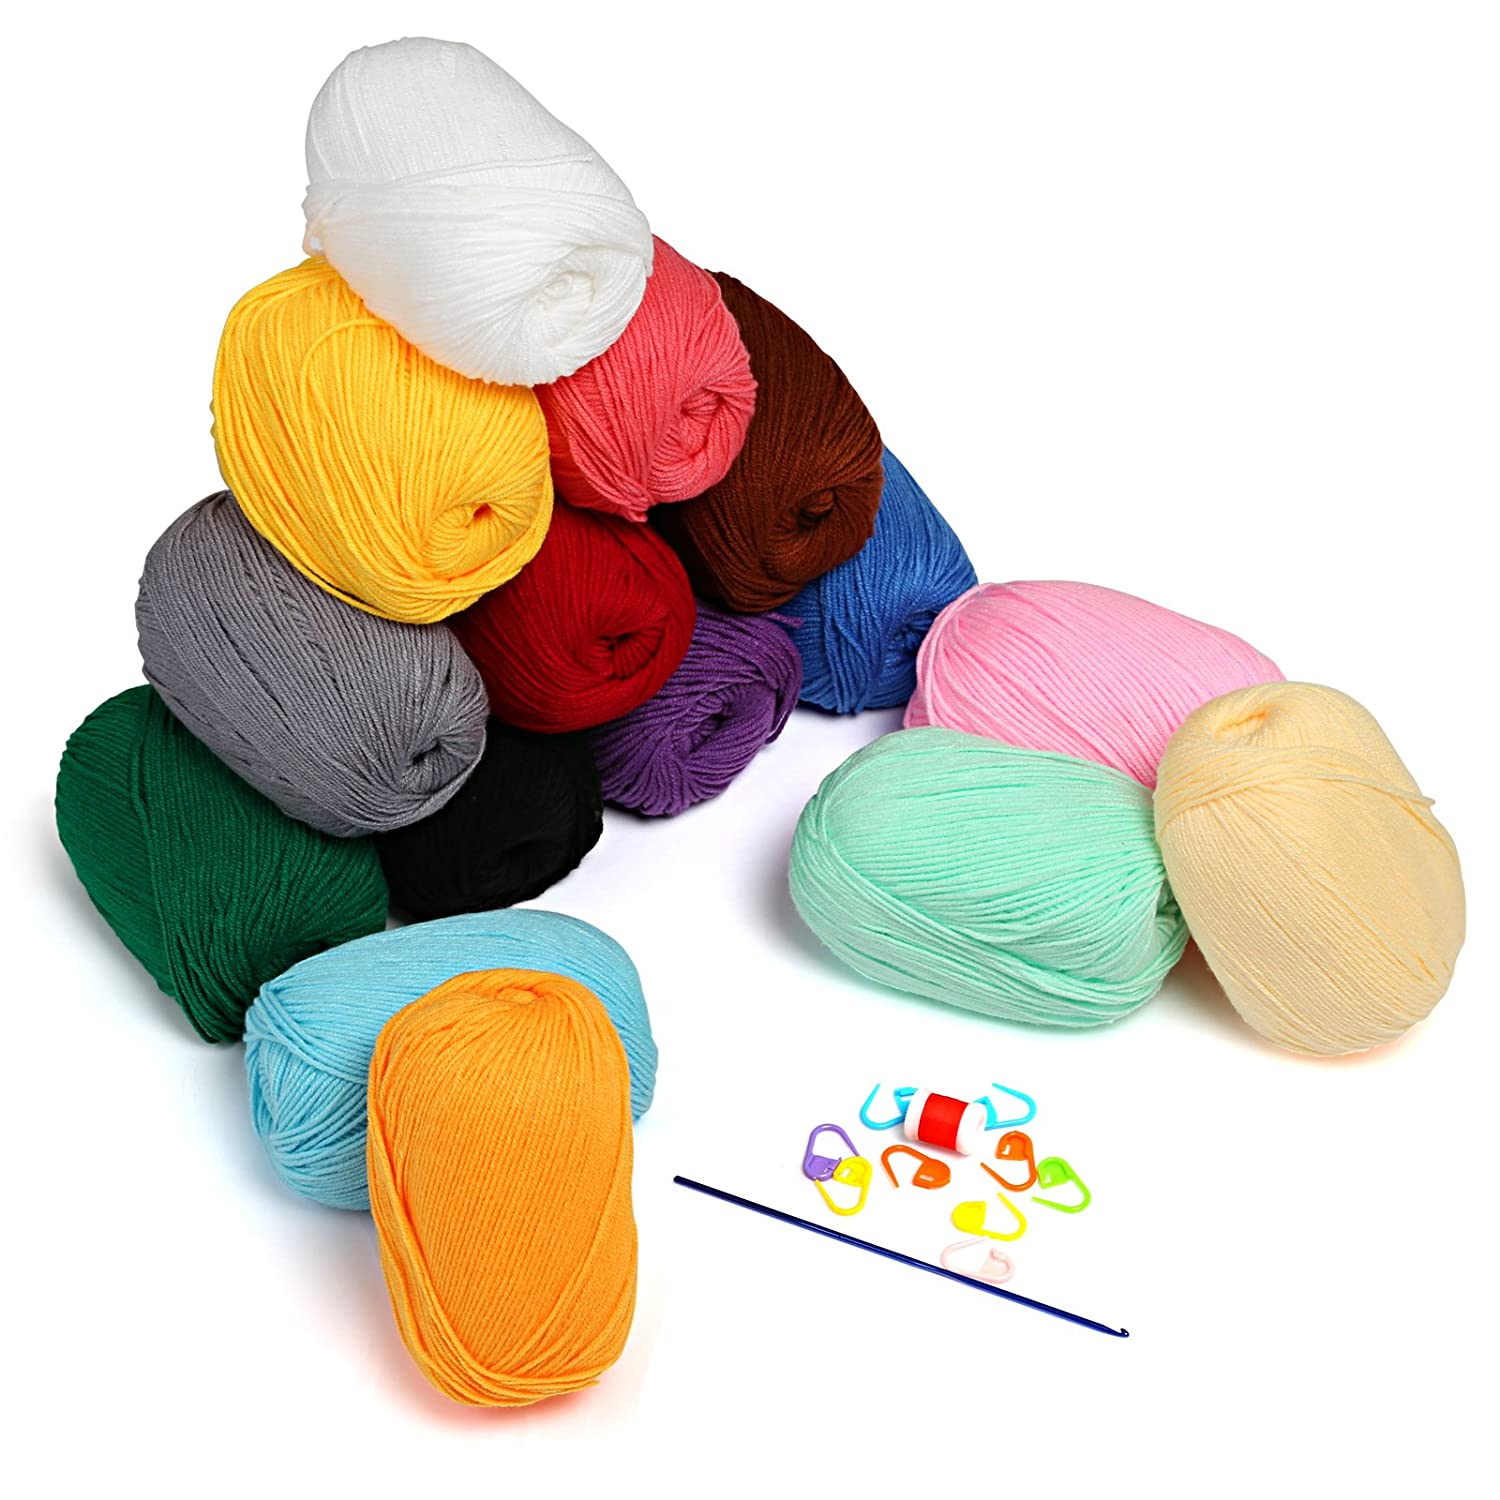 LIHAO 12 Skeins Mini Yarn for Knitting Crochet Craft - 100% Acrylic 4336926433